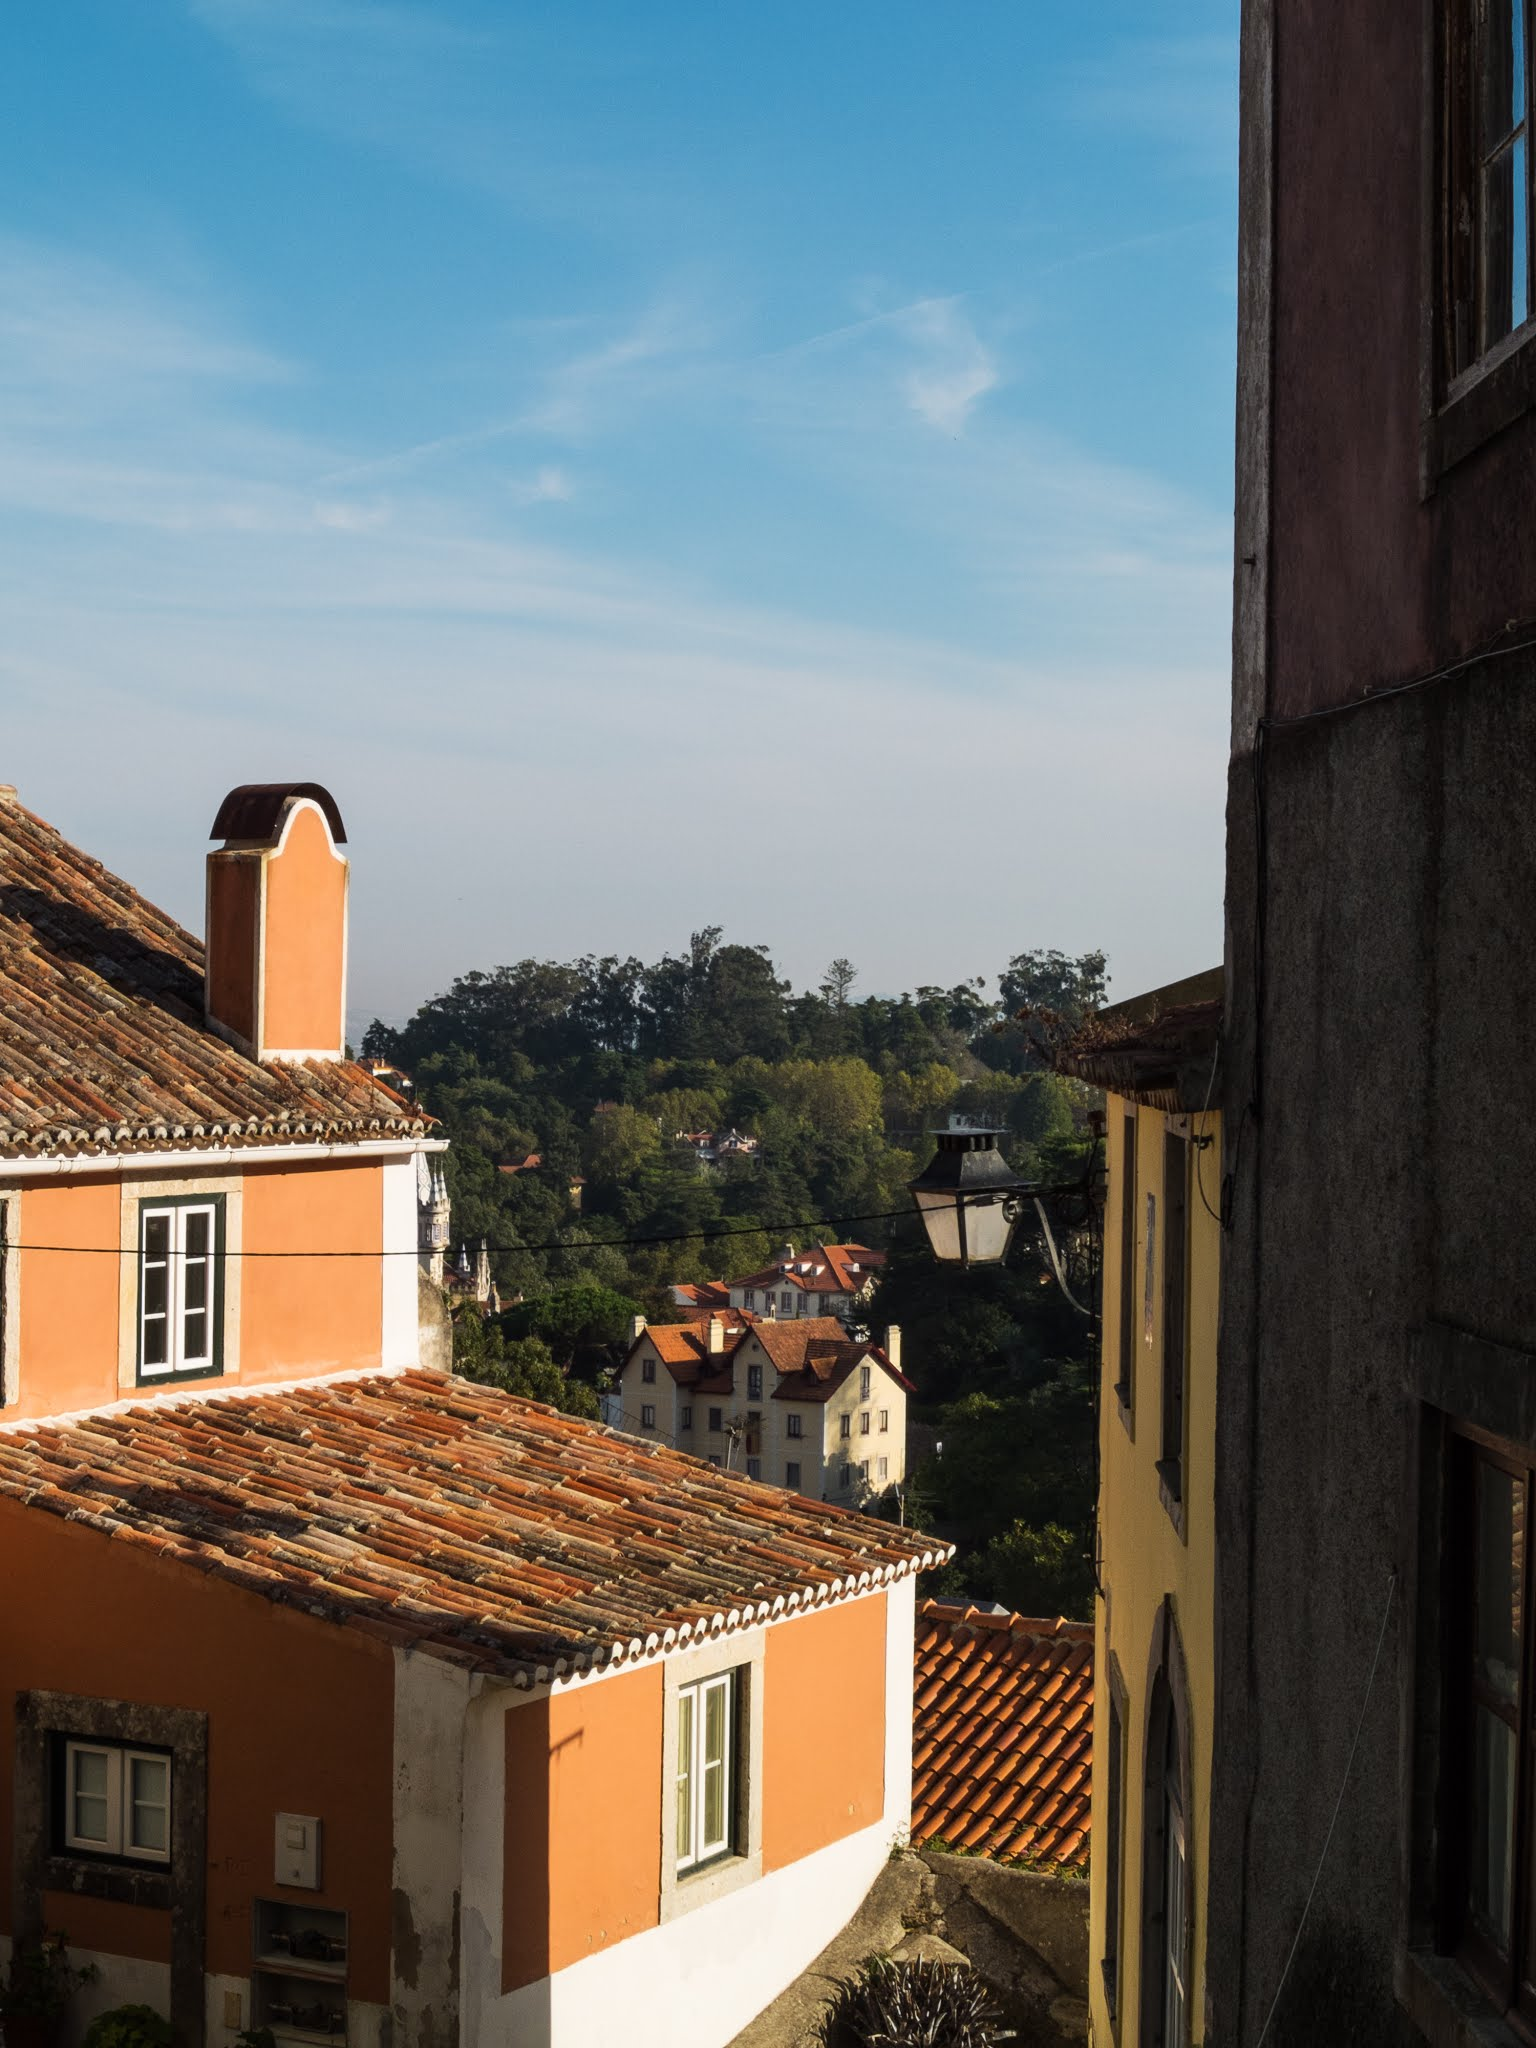 View of buildings and roofs in Sintra, Portugal.